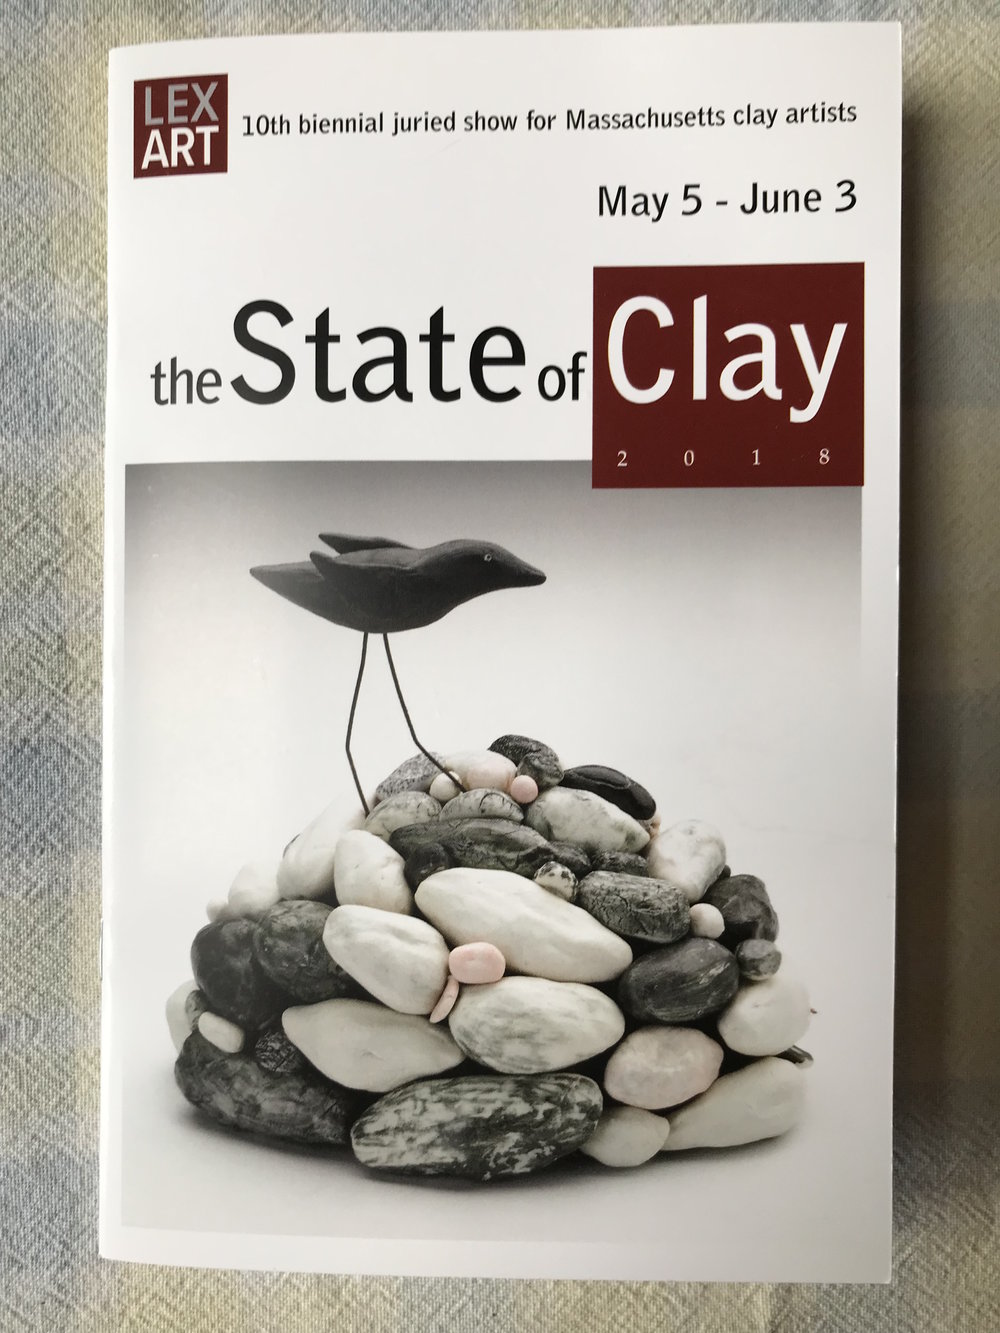 The State of Clay - May 5 - June 3, 2018, Lexington, MAParsons Gallery at The Lexington Arts & Crafts SocietyFrancine's work will be included in an exhibit featuring clay artists connected to the state of Massachusetts. This show is juried by Emily Zilber, the Curator of Contemporary Decorative Arts at the Museum of Fine Arts, Boston MA.In other good news, the piece sold (!)Learn more here, at The State of Clay